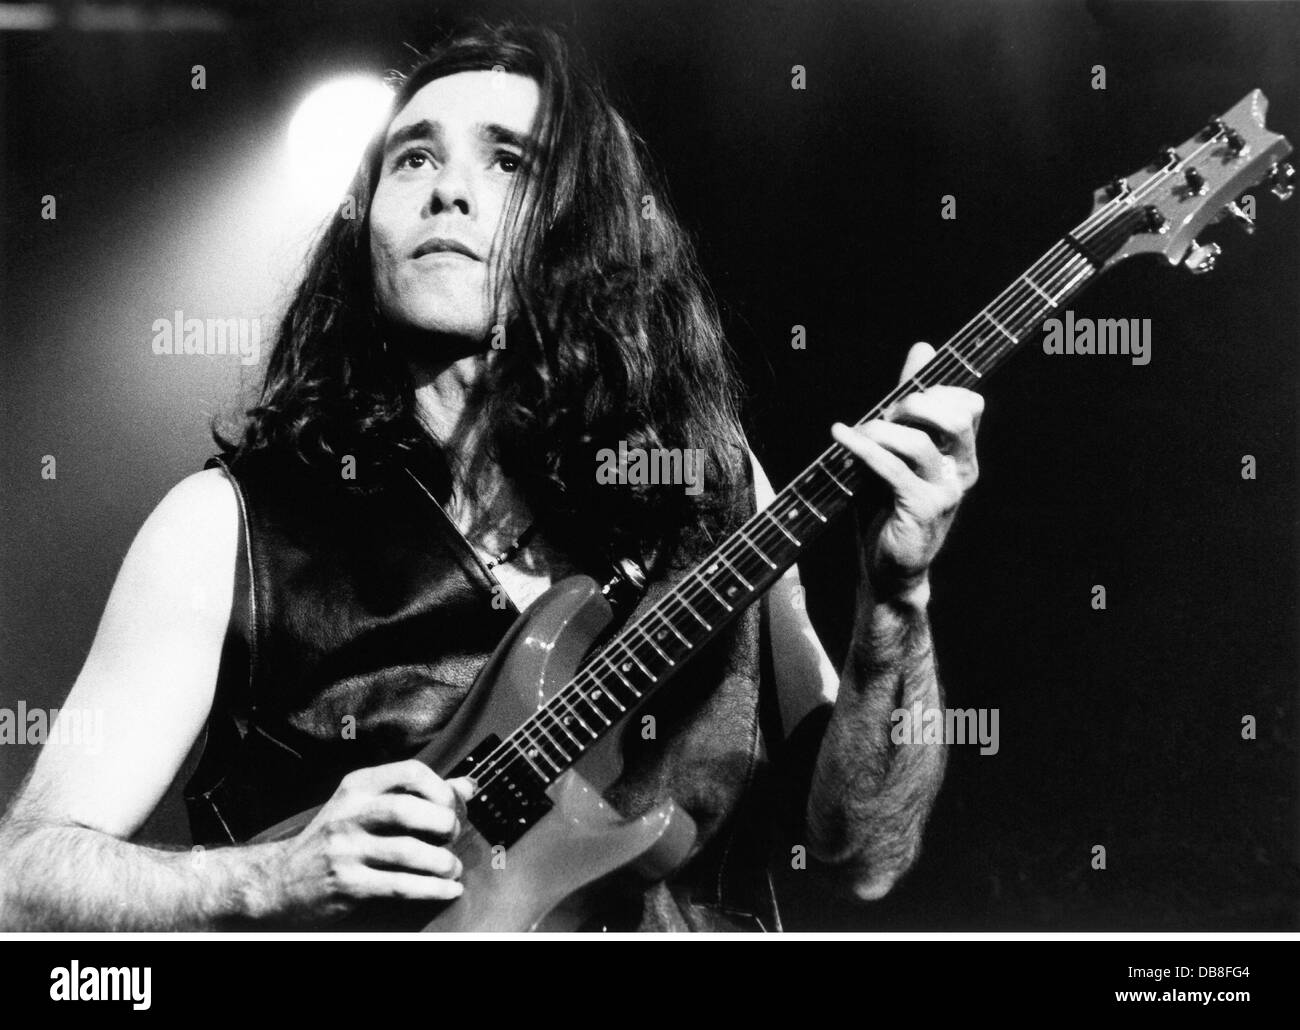 Pereira, Heitor, * 29.11.1960, Brazil musician, guitarist, half length, during stage performance, Montreux, 1994, Stock Photo